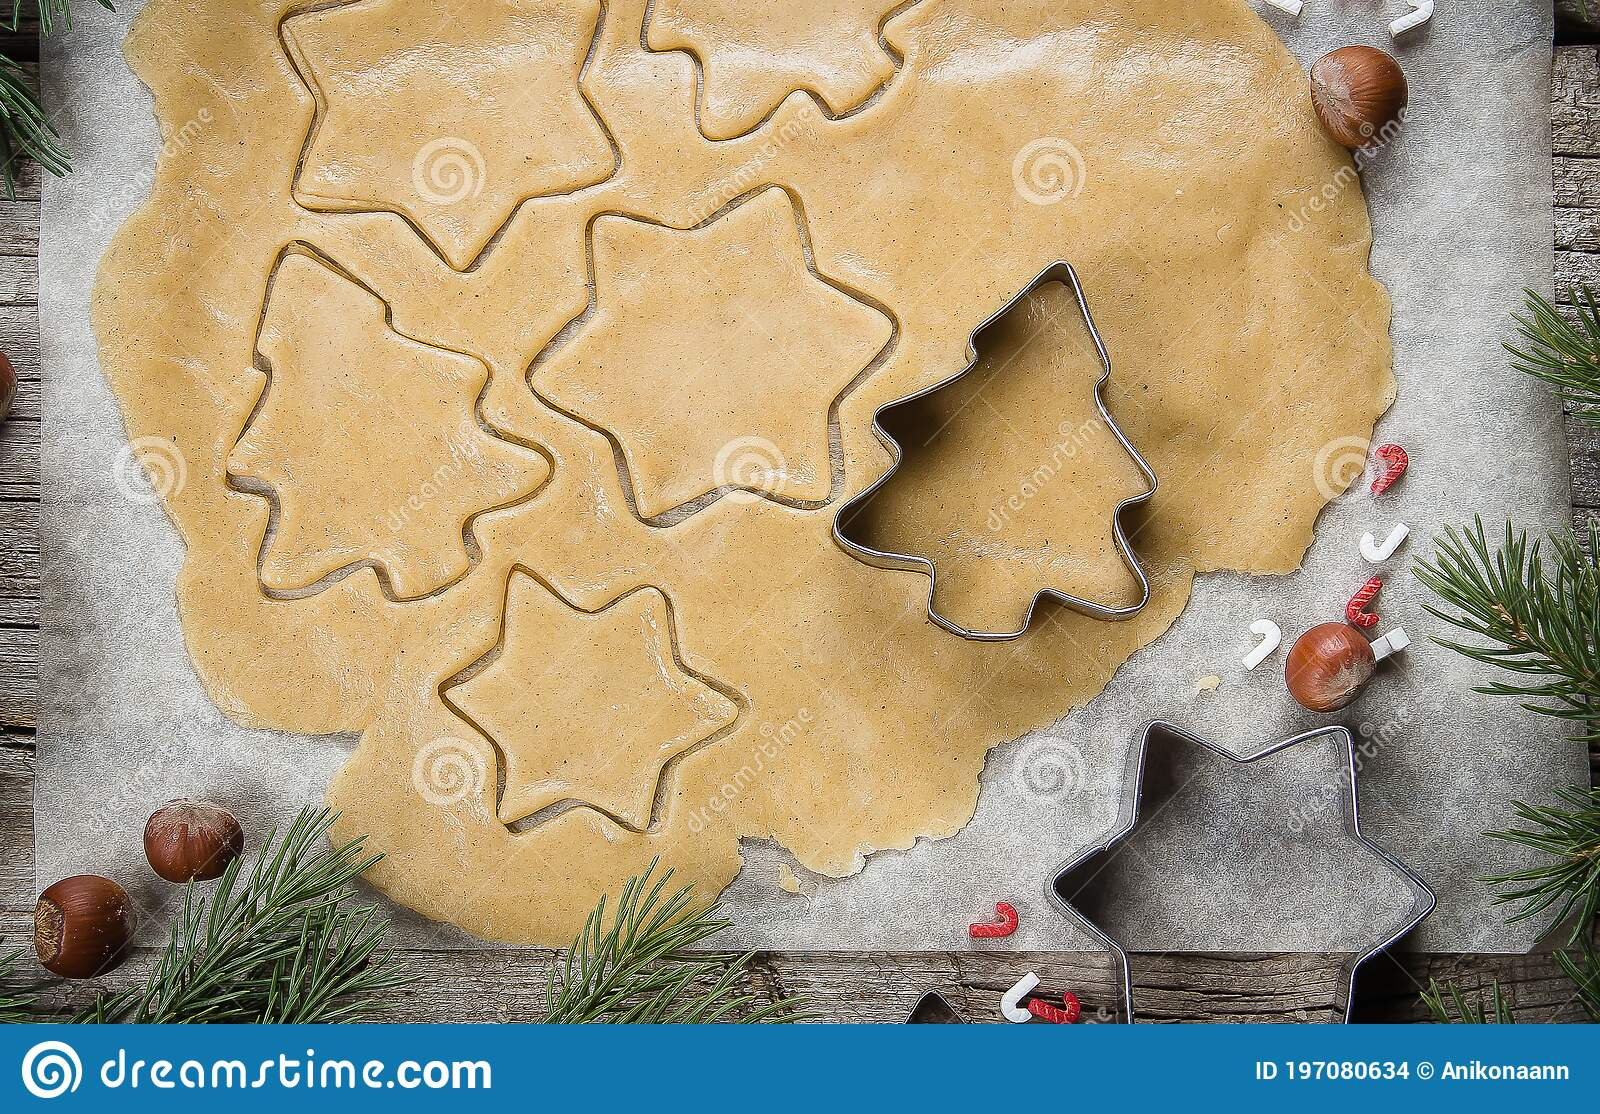 2021 Christmas Cookies Christmas Bakery Concept Gingerbread Raw Dough For Christmas Cookies Happy New Year 2021 Top View Stock Photo Image Of Holiday Cinnamon 197080634